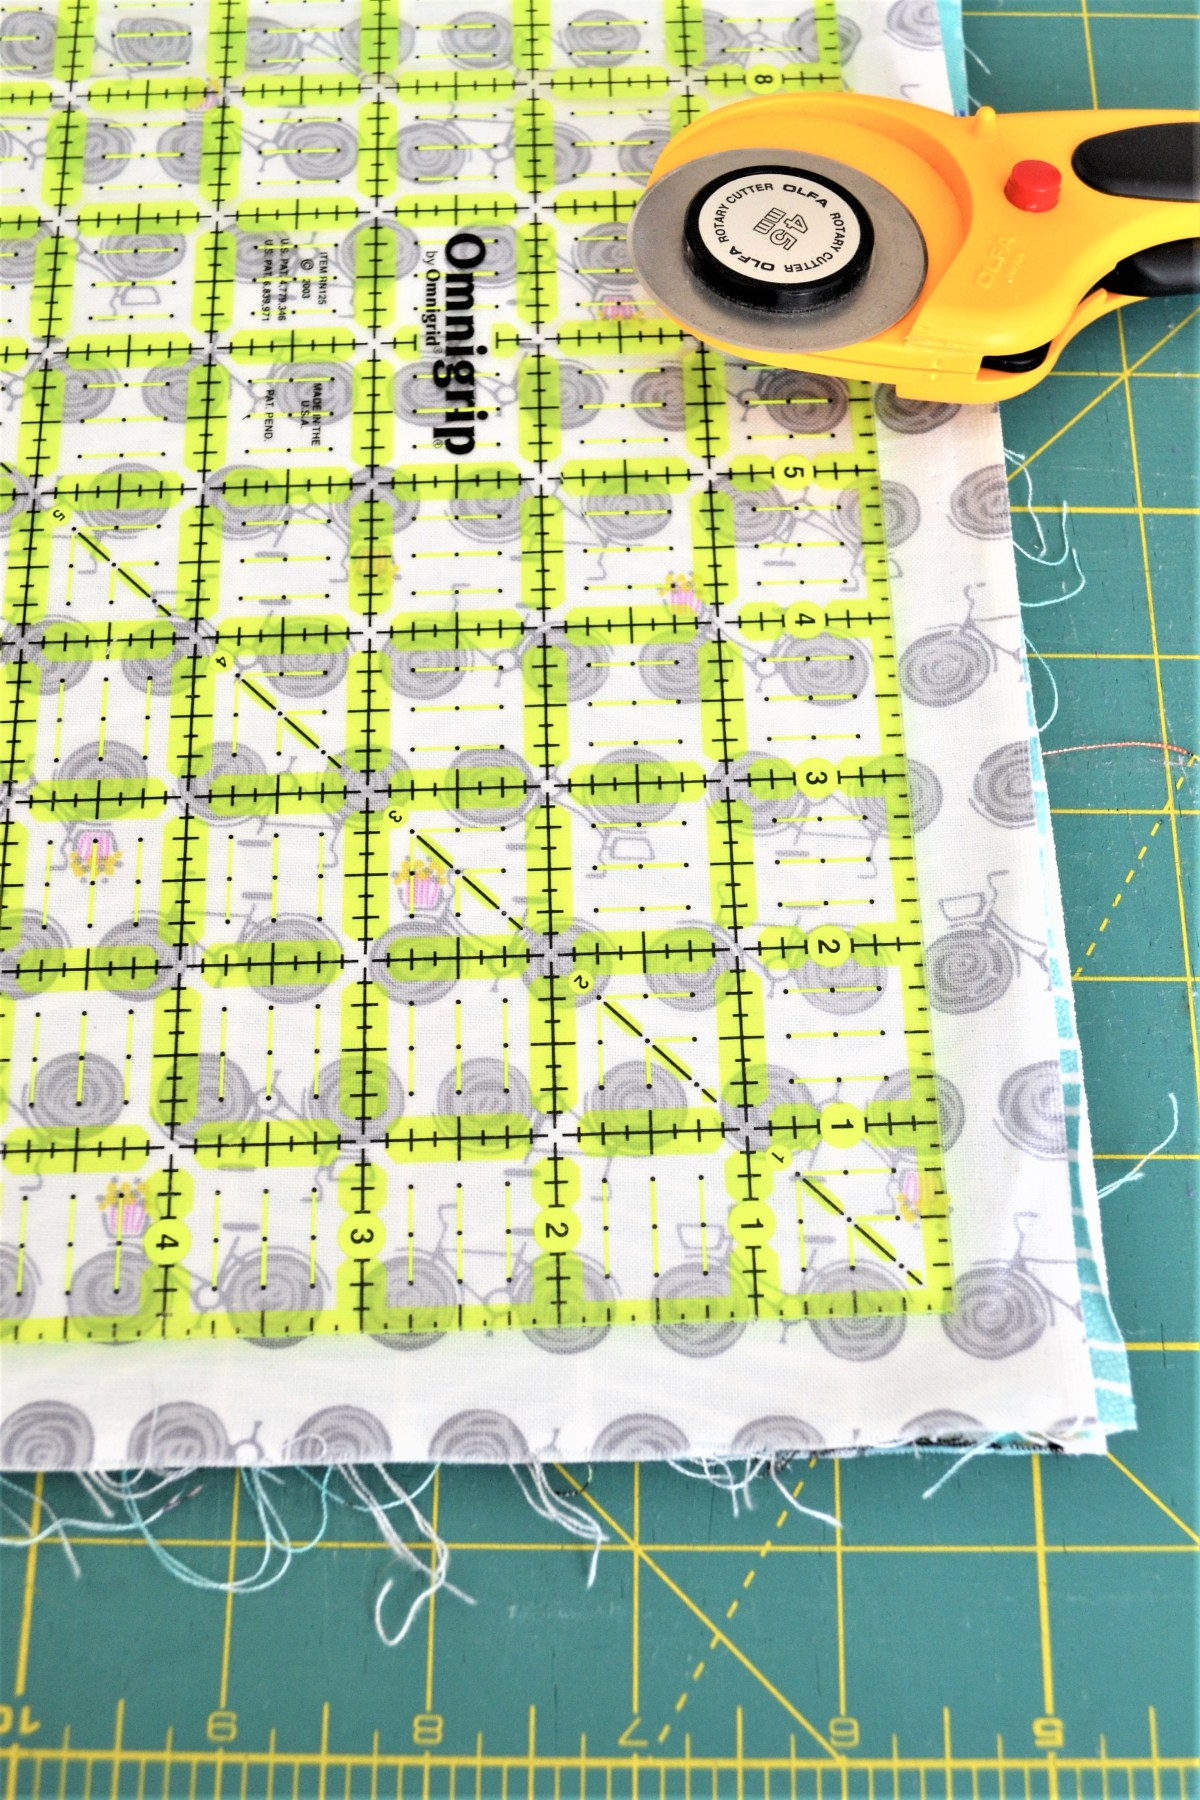 How to Sew Baby Blocks With Taggies! - cutting squares